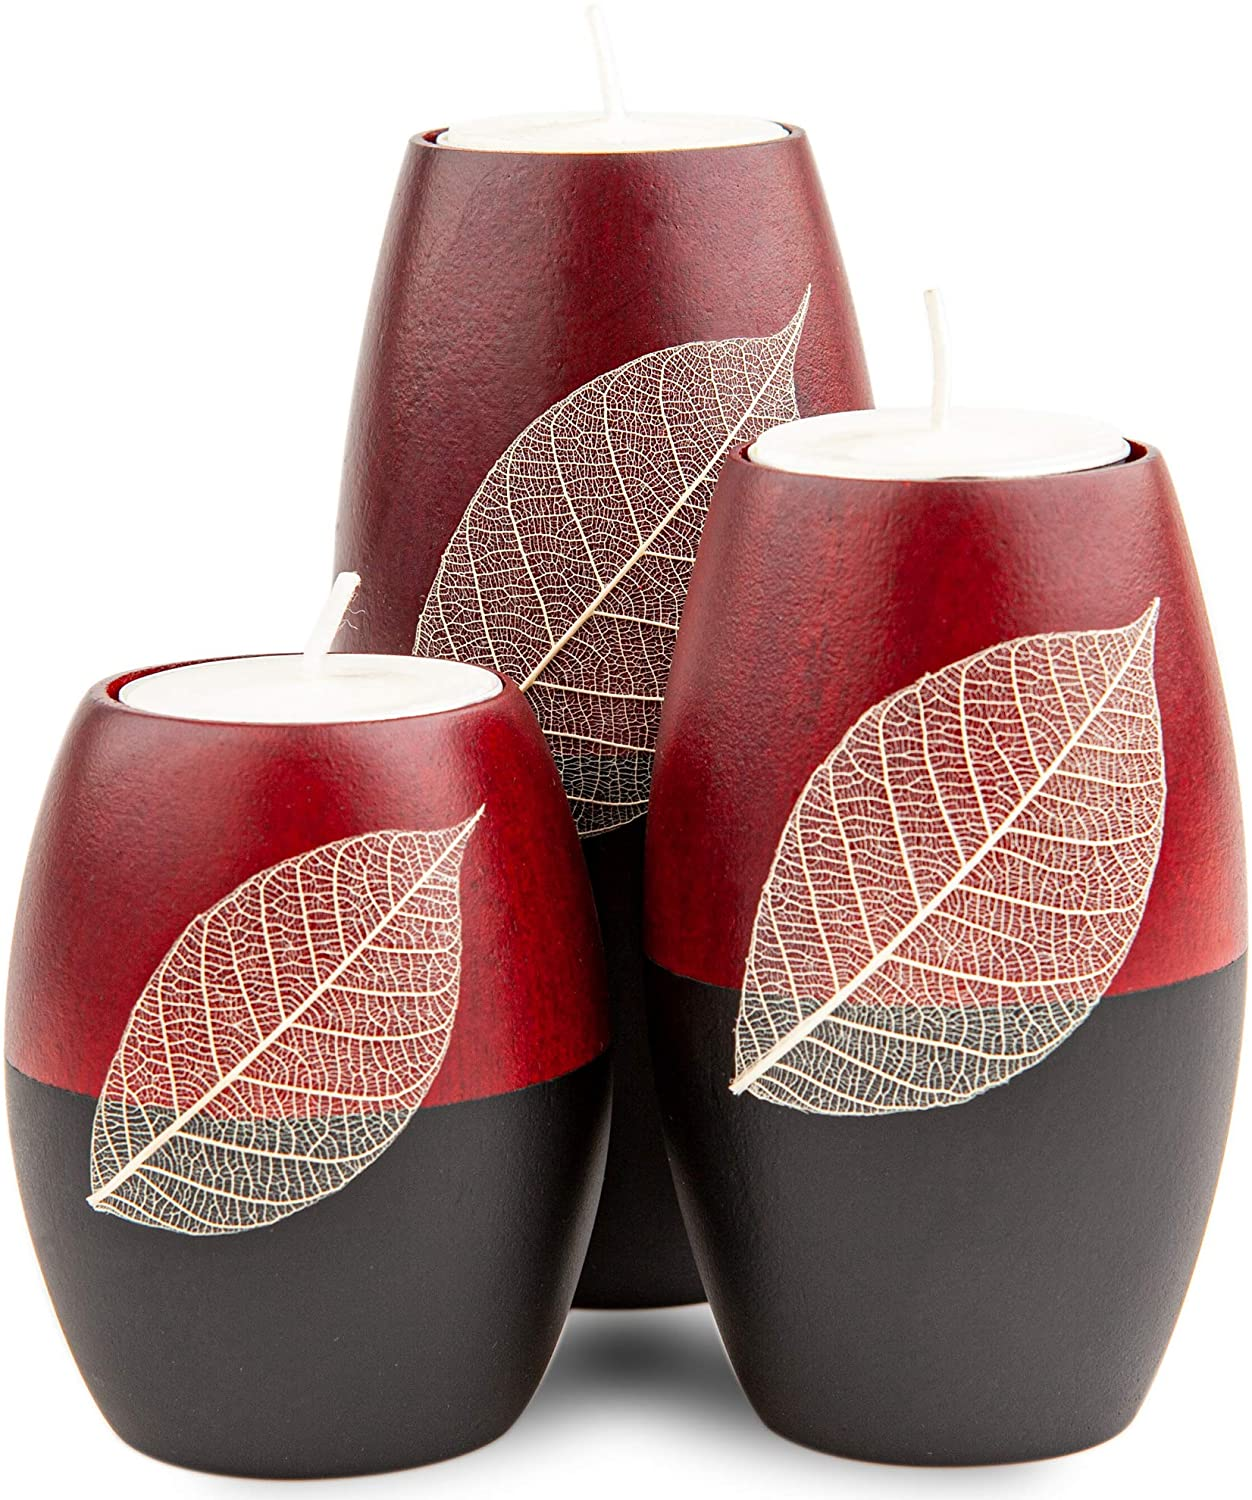 IYARA CRAFT 3 Wooden Candle Holders Decorative Candle Holders with Beauty Decor Dry Leaf – Intricate Details – Matte Wood Finish – Ideal for Modern & Rustic Settings 2 Tones, red, Black (Rugby Shape)